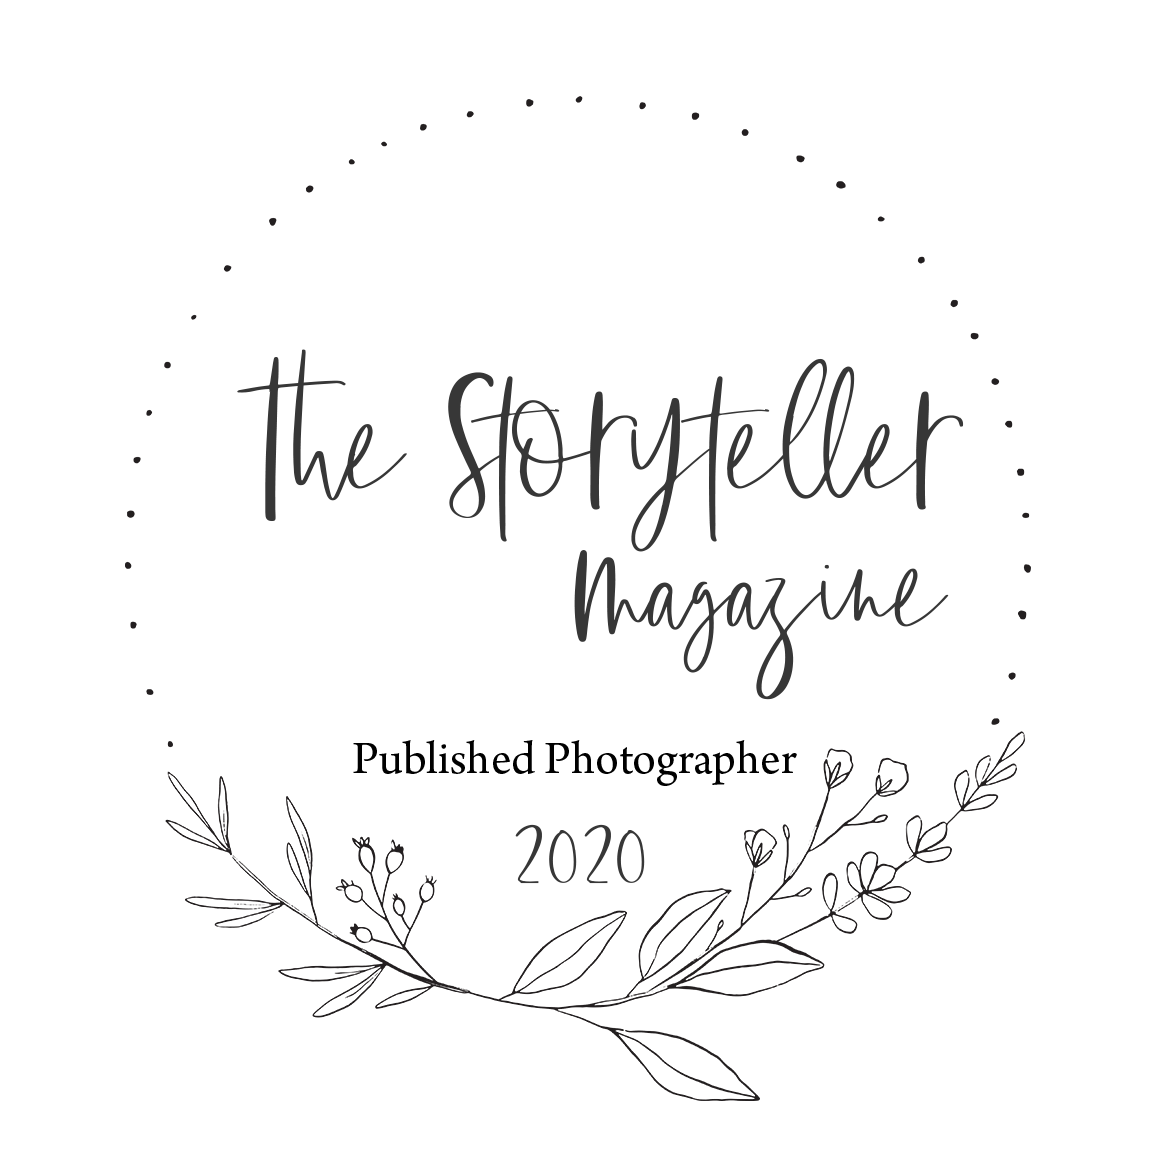 Natalie Mae Photography published on The Storyteller Magazine